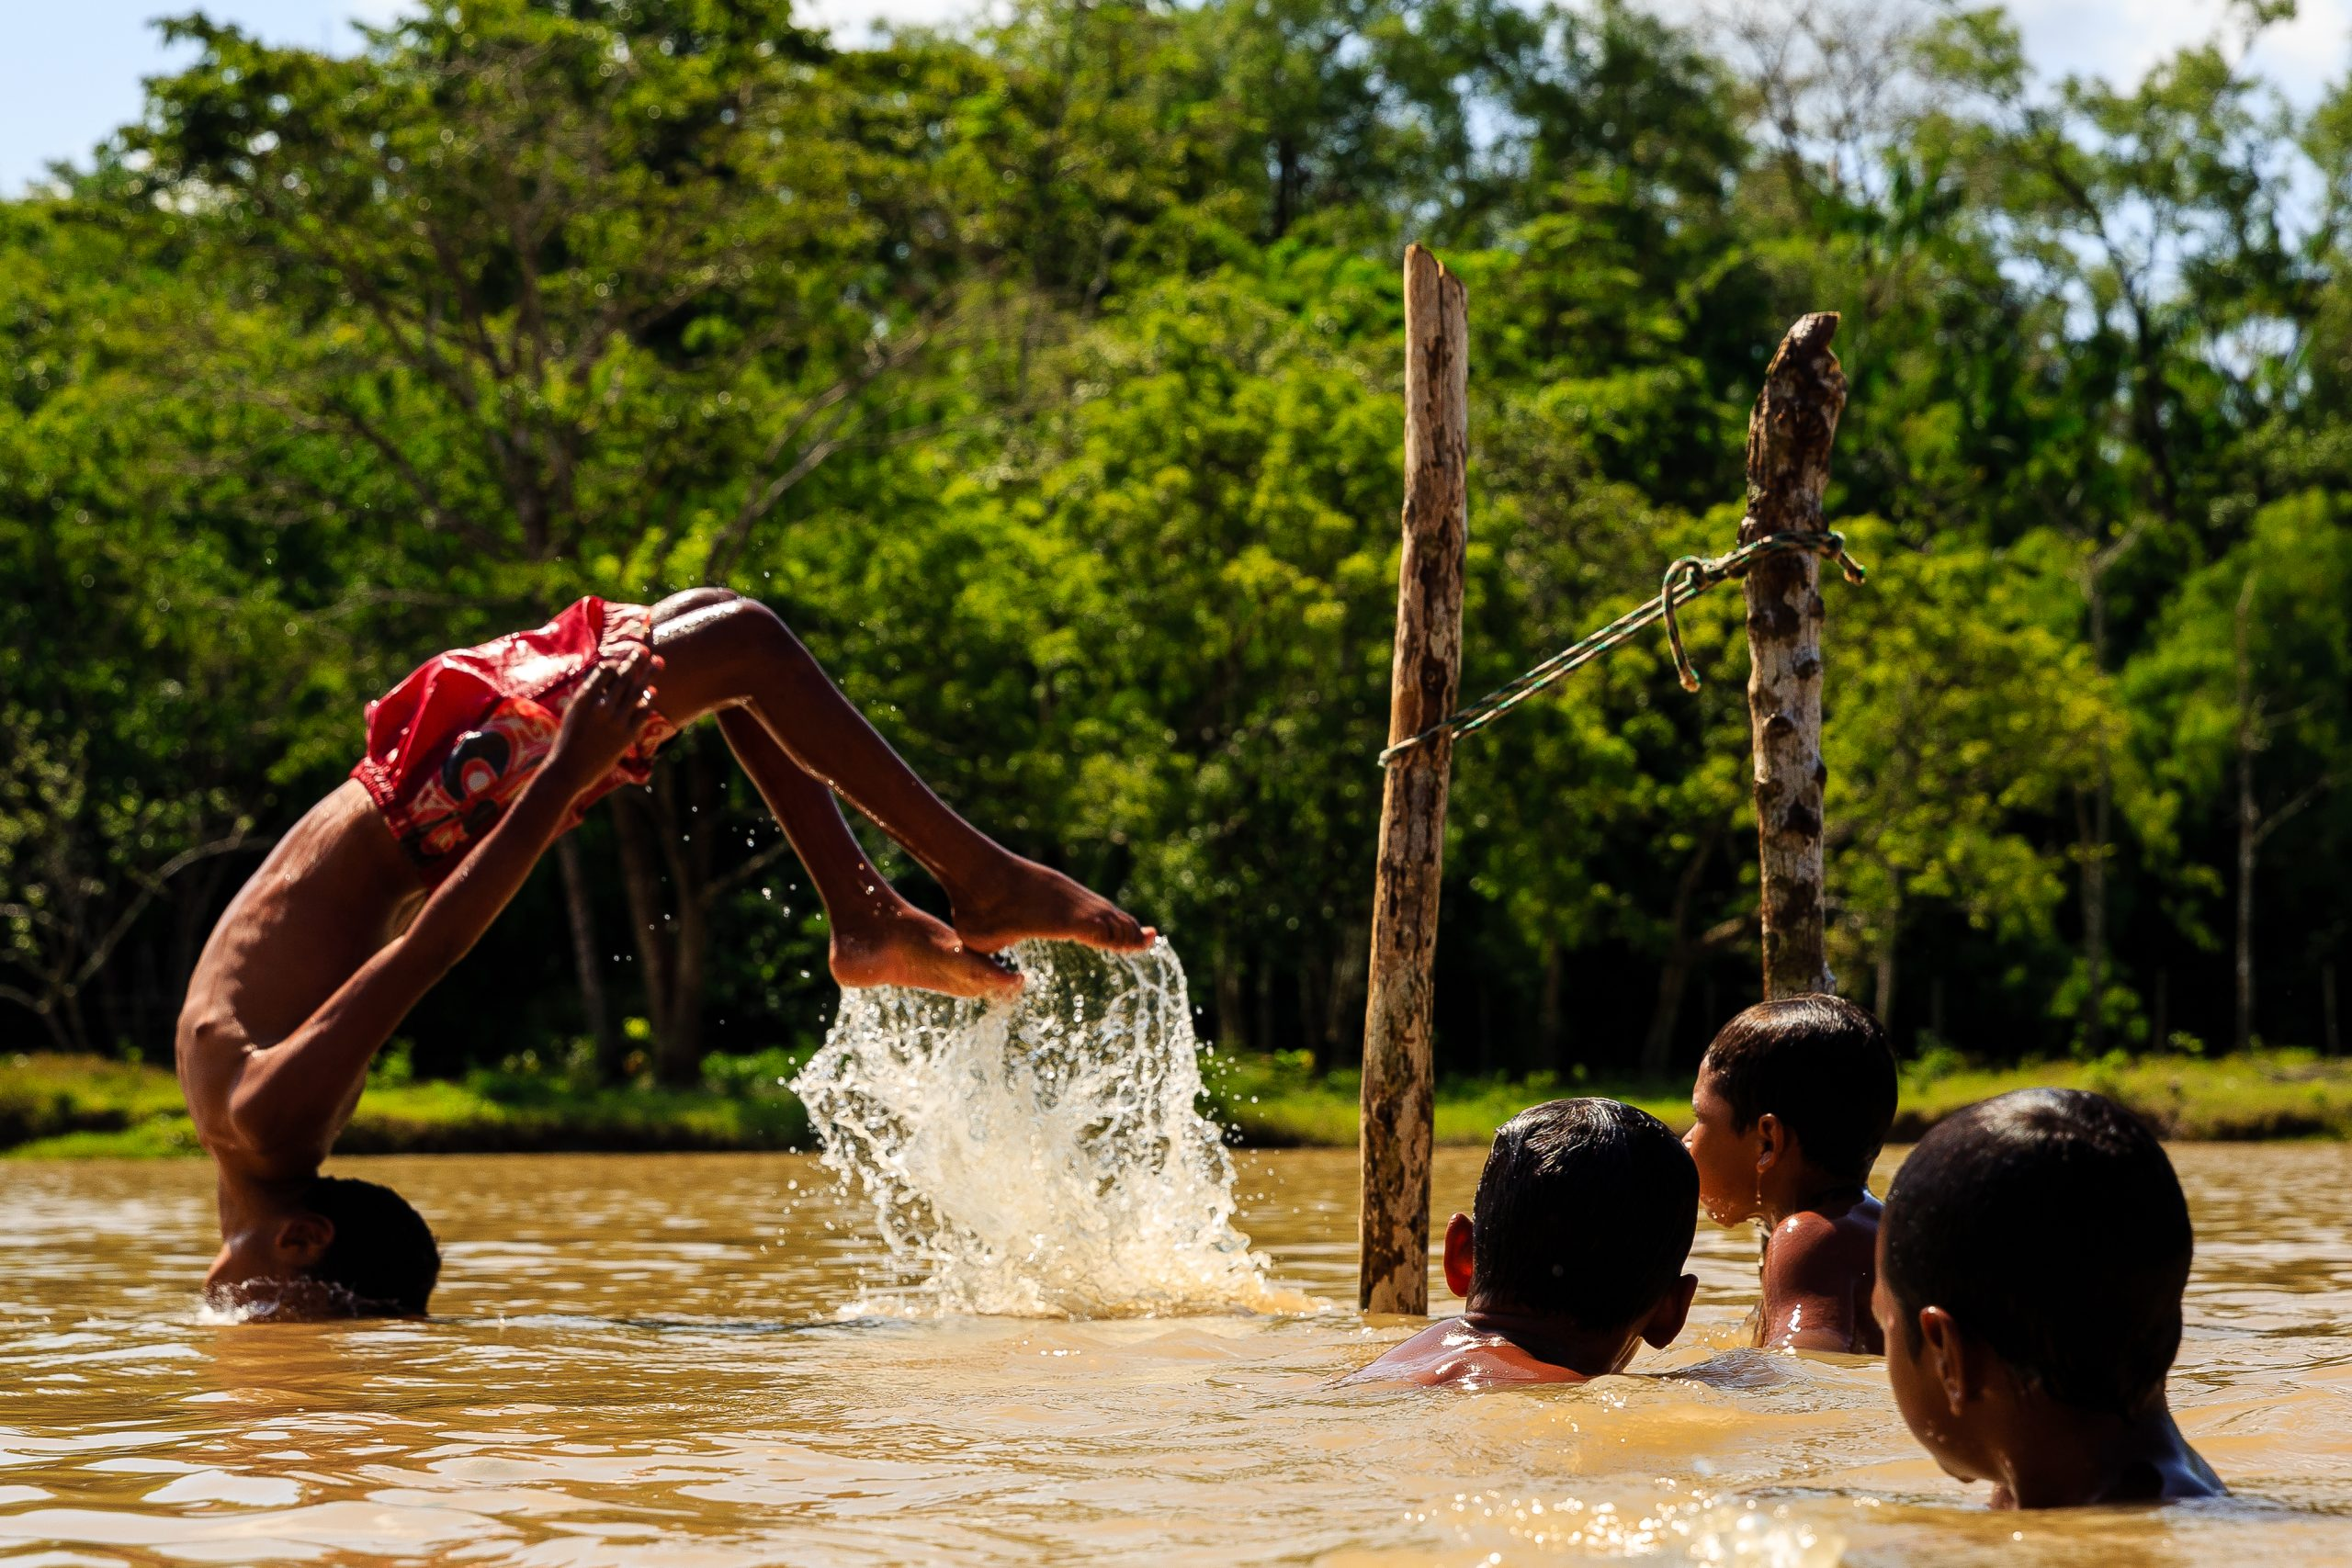 Color photo by Diego Baravelli of boys swimming in a river, Brazil